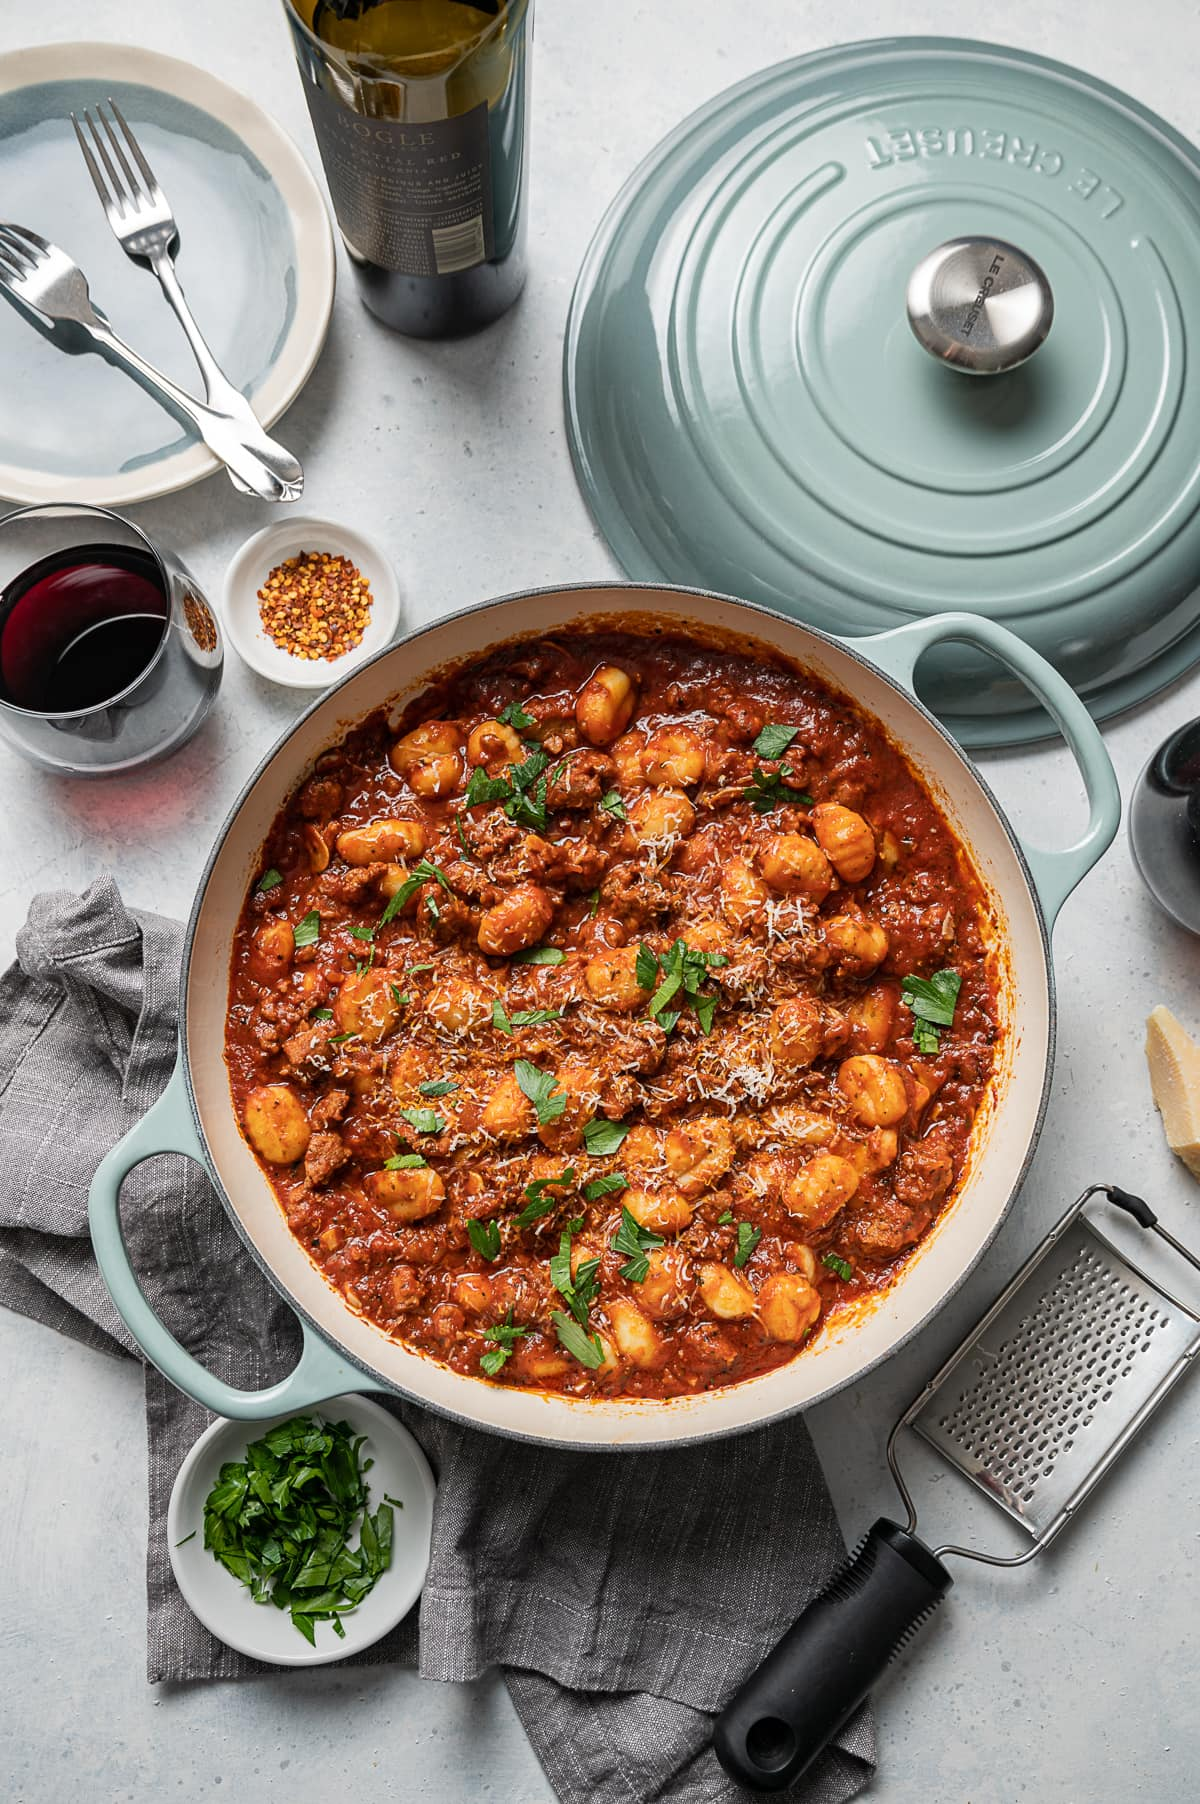 large aqua pan with sausage and gnocchi with red tomato sauce, glasses of red wine, bowl of green parsley, bowl of red pepper flakes, plates, forks, bottle of wine